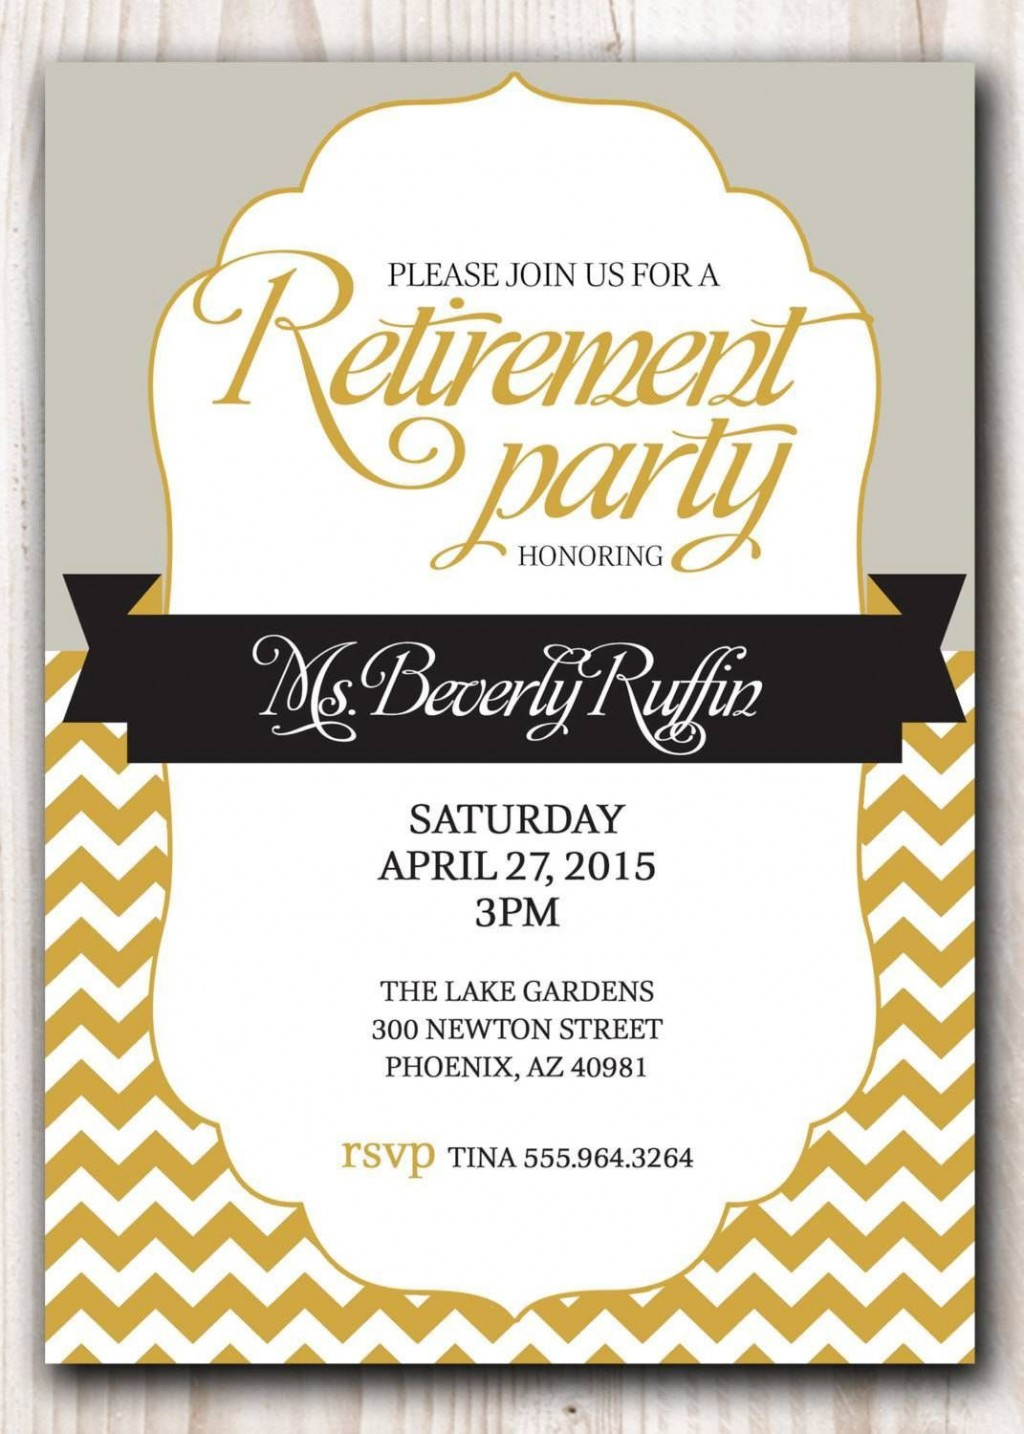 006 Unforgettable Retirement Party Invitation Template Picture  Templates For Free Nurse M WordLarge